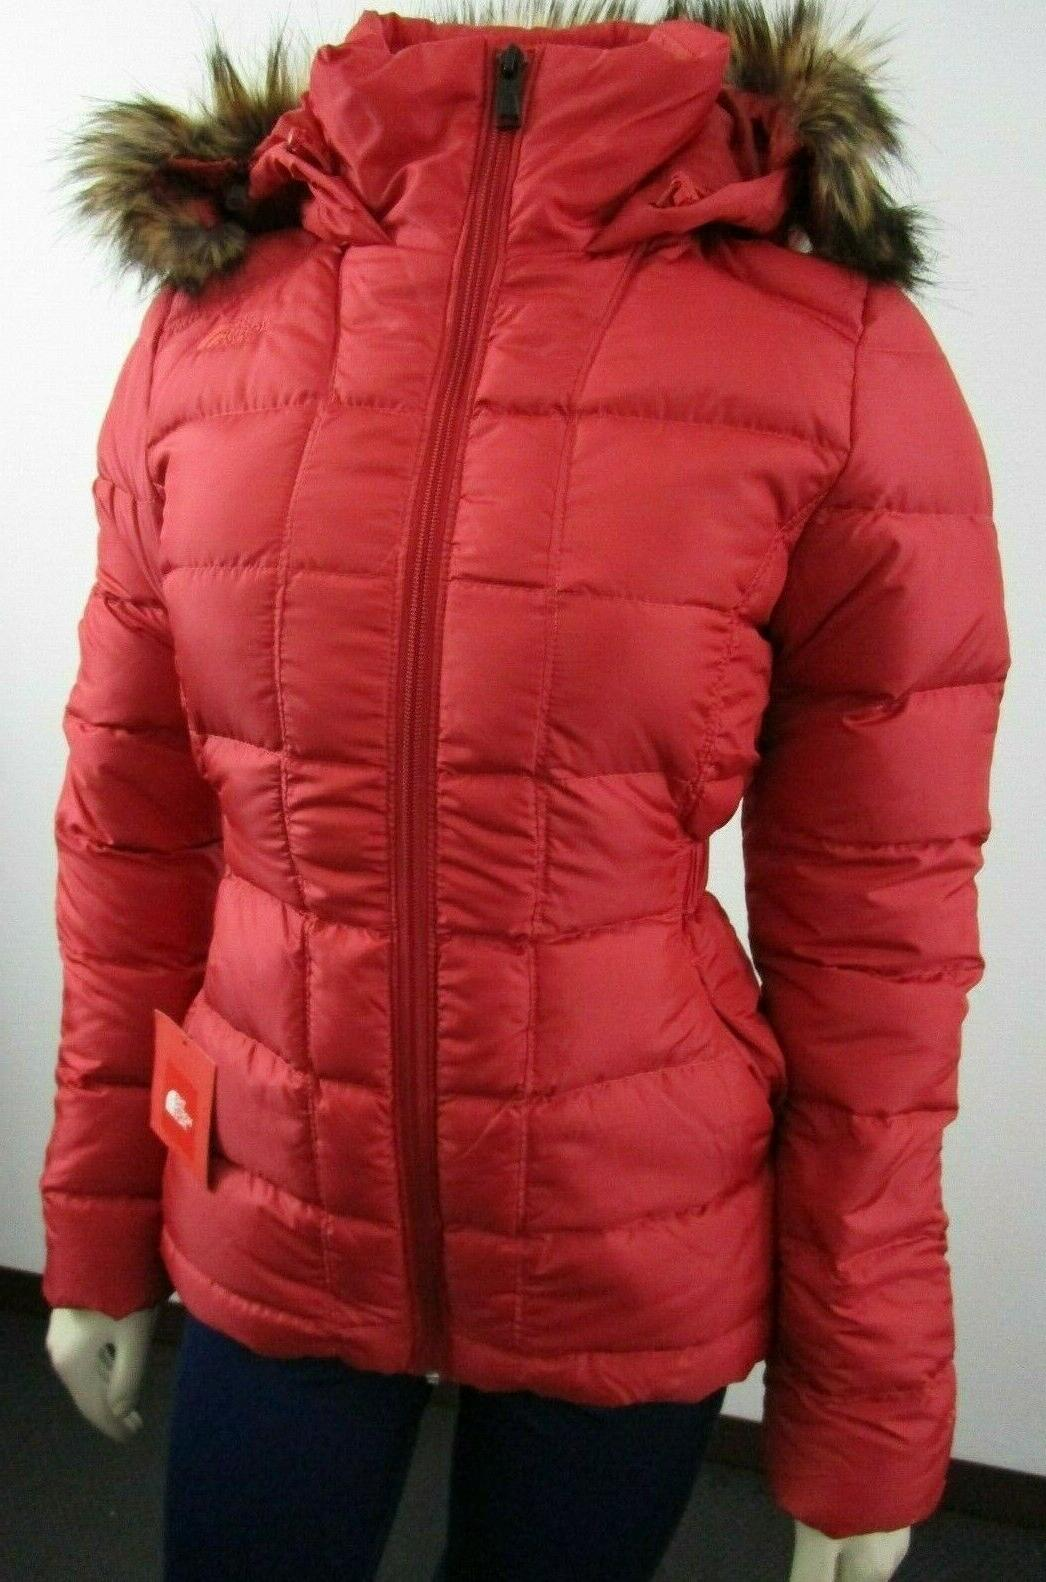 NWT The Face TNF Gotham Down Jacket - Red